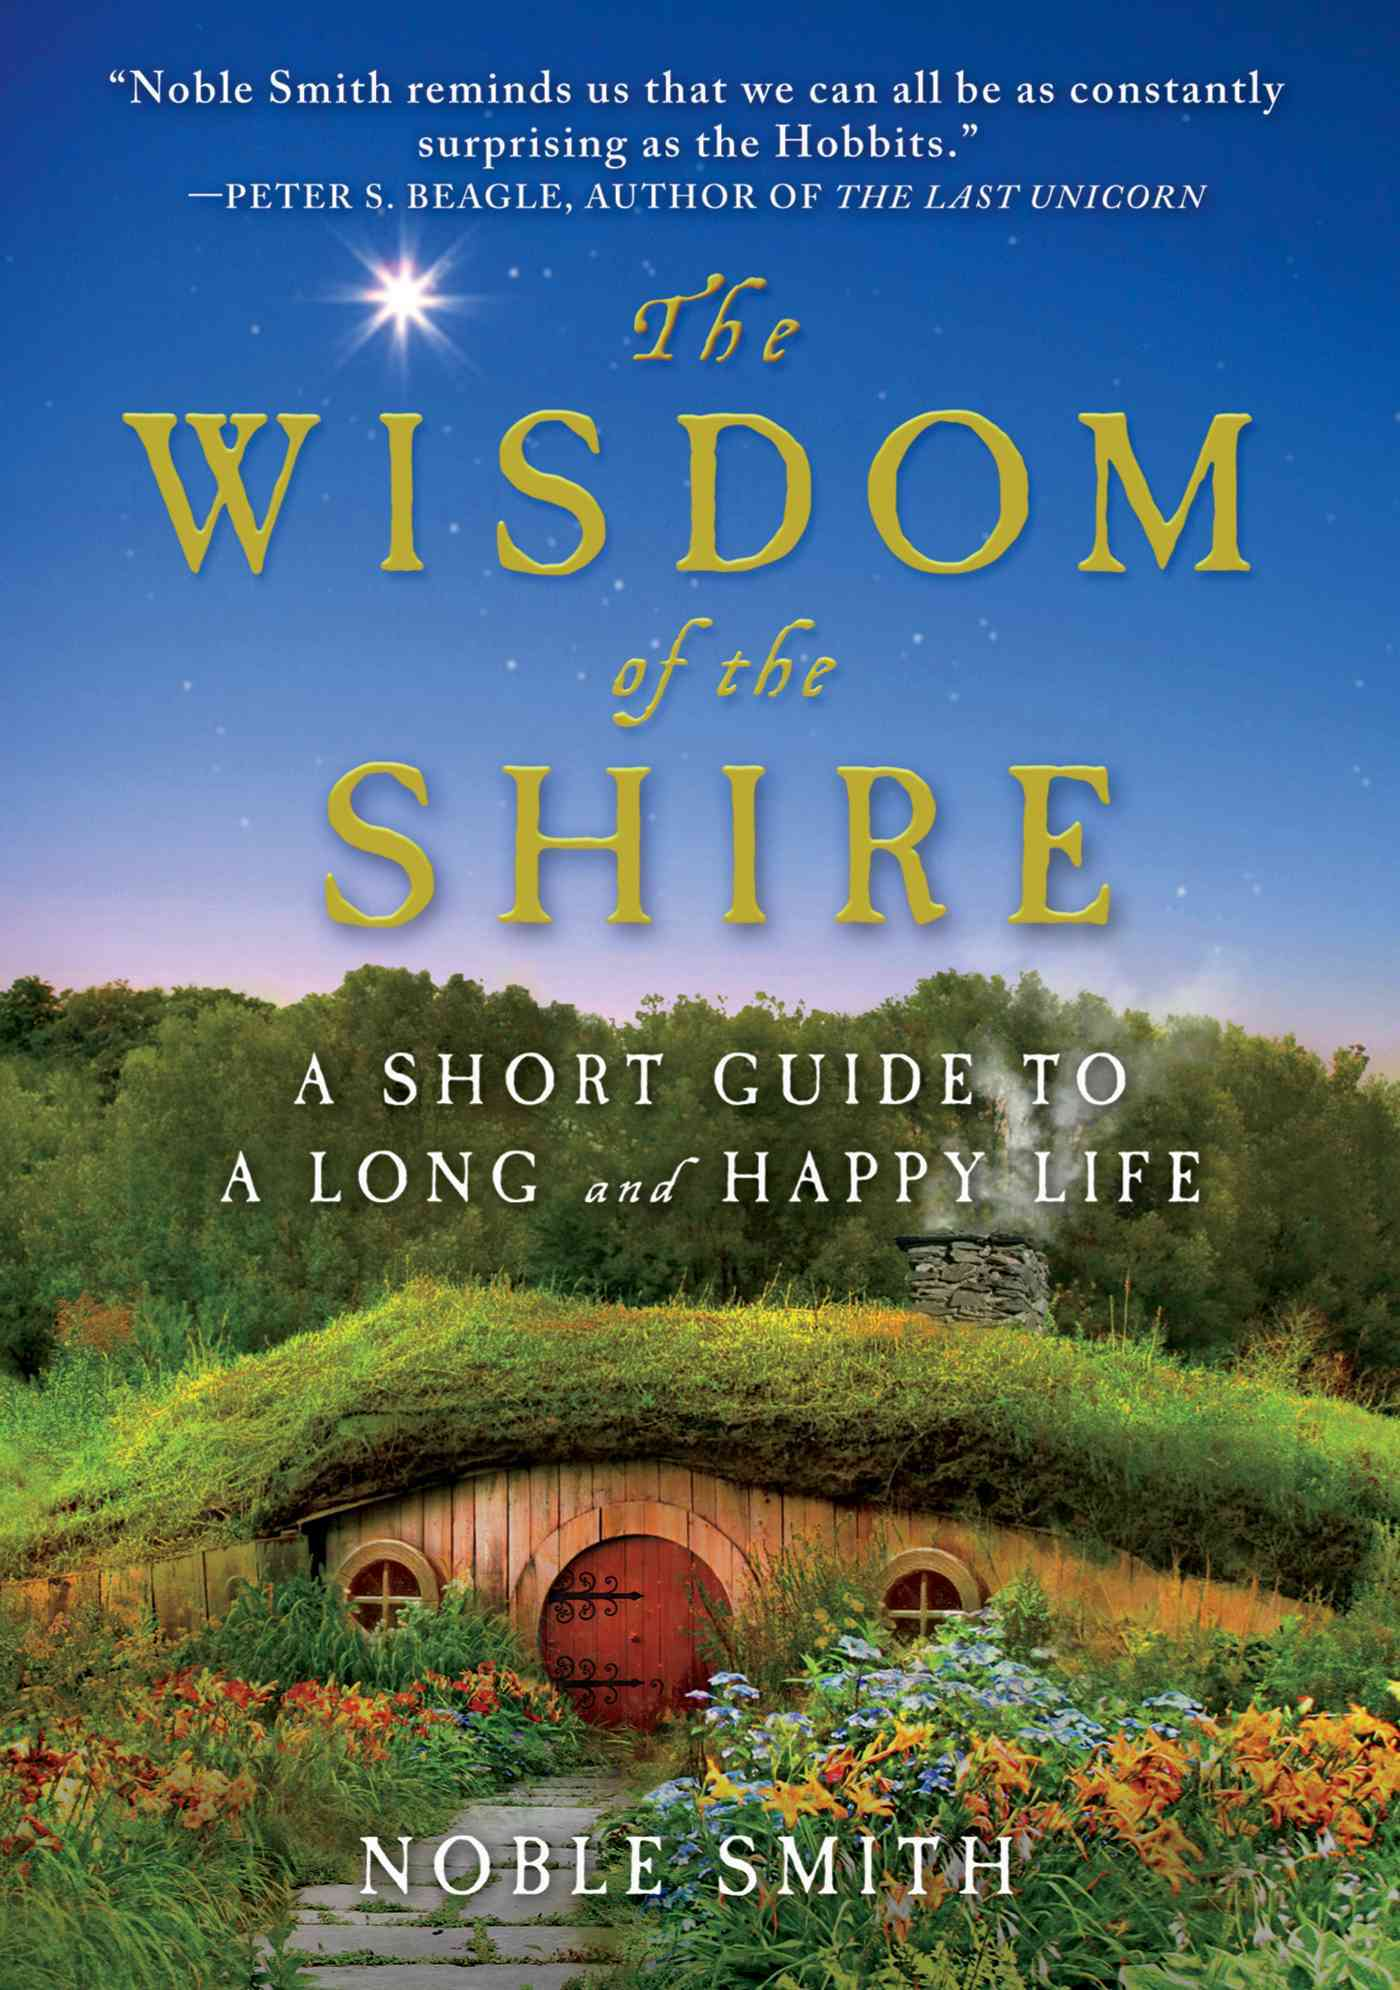 The Wisdom of the Shire: A Short Guide to a Long and Happy Life (Hardcover)